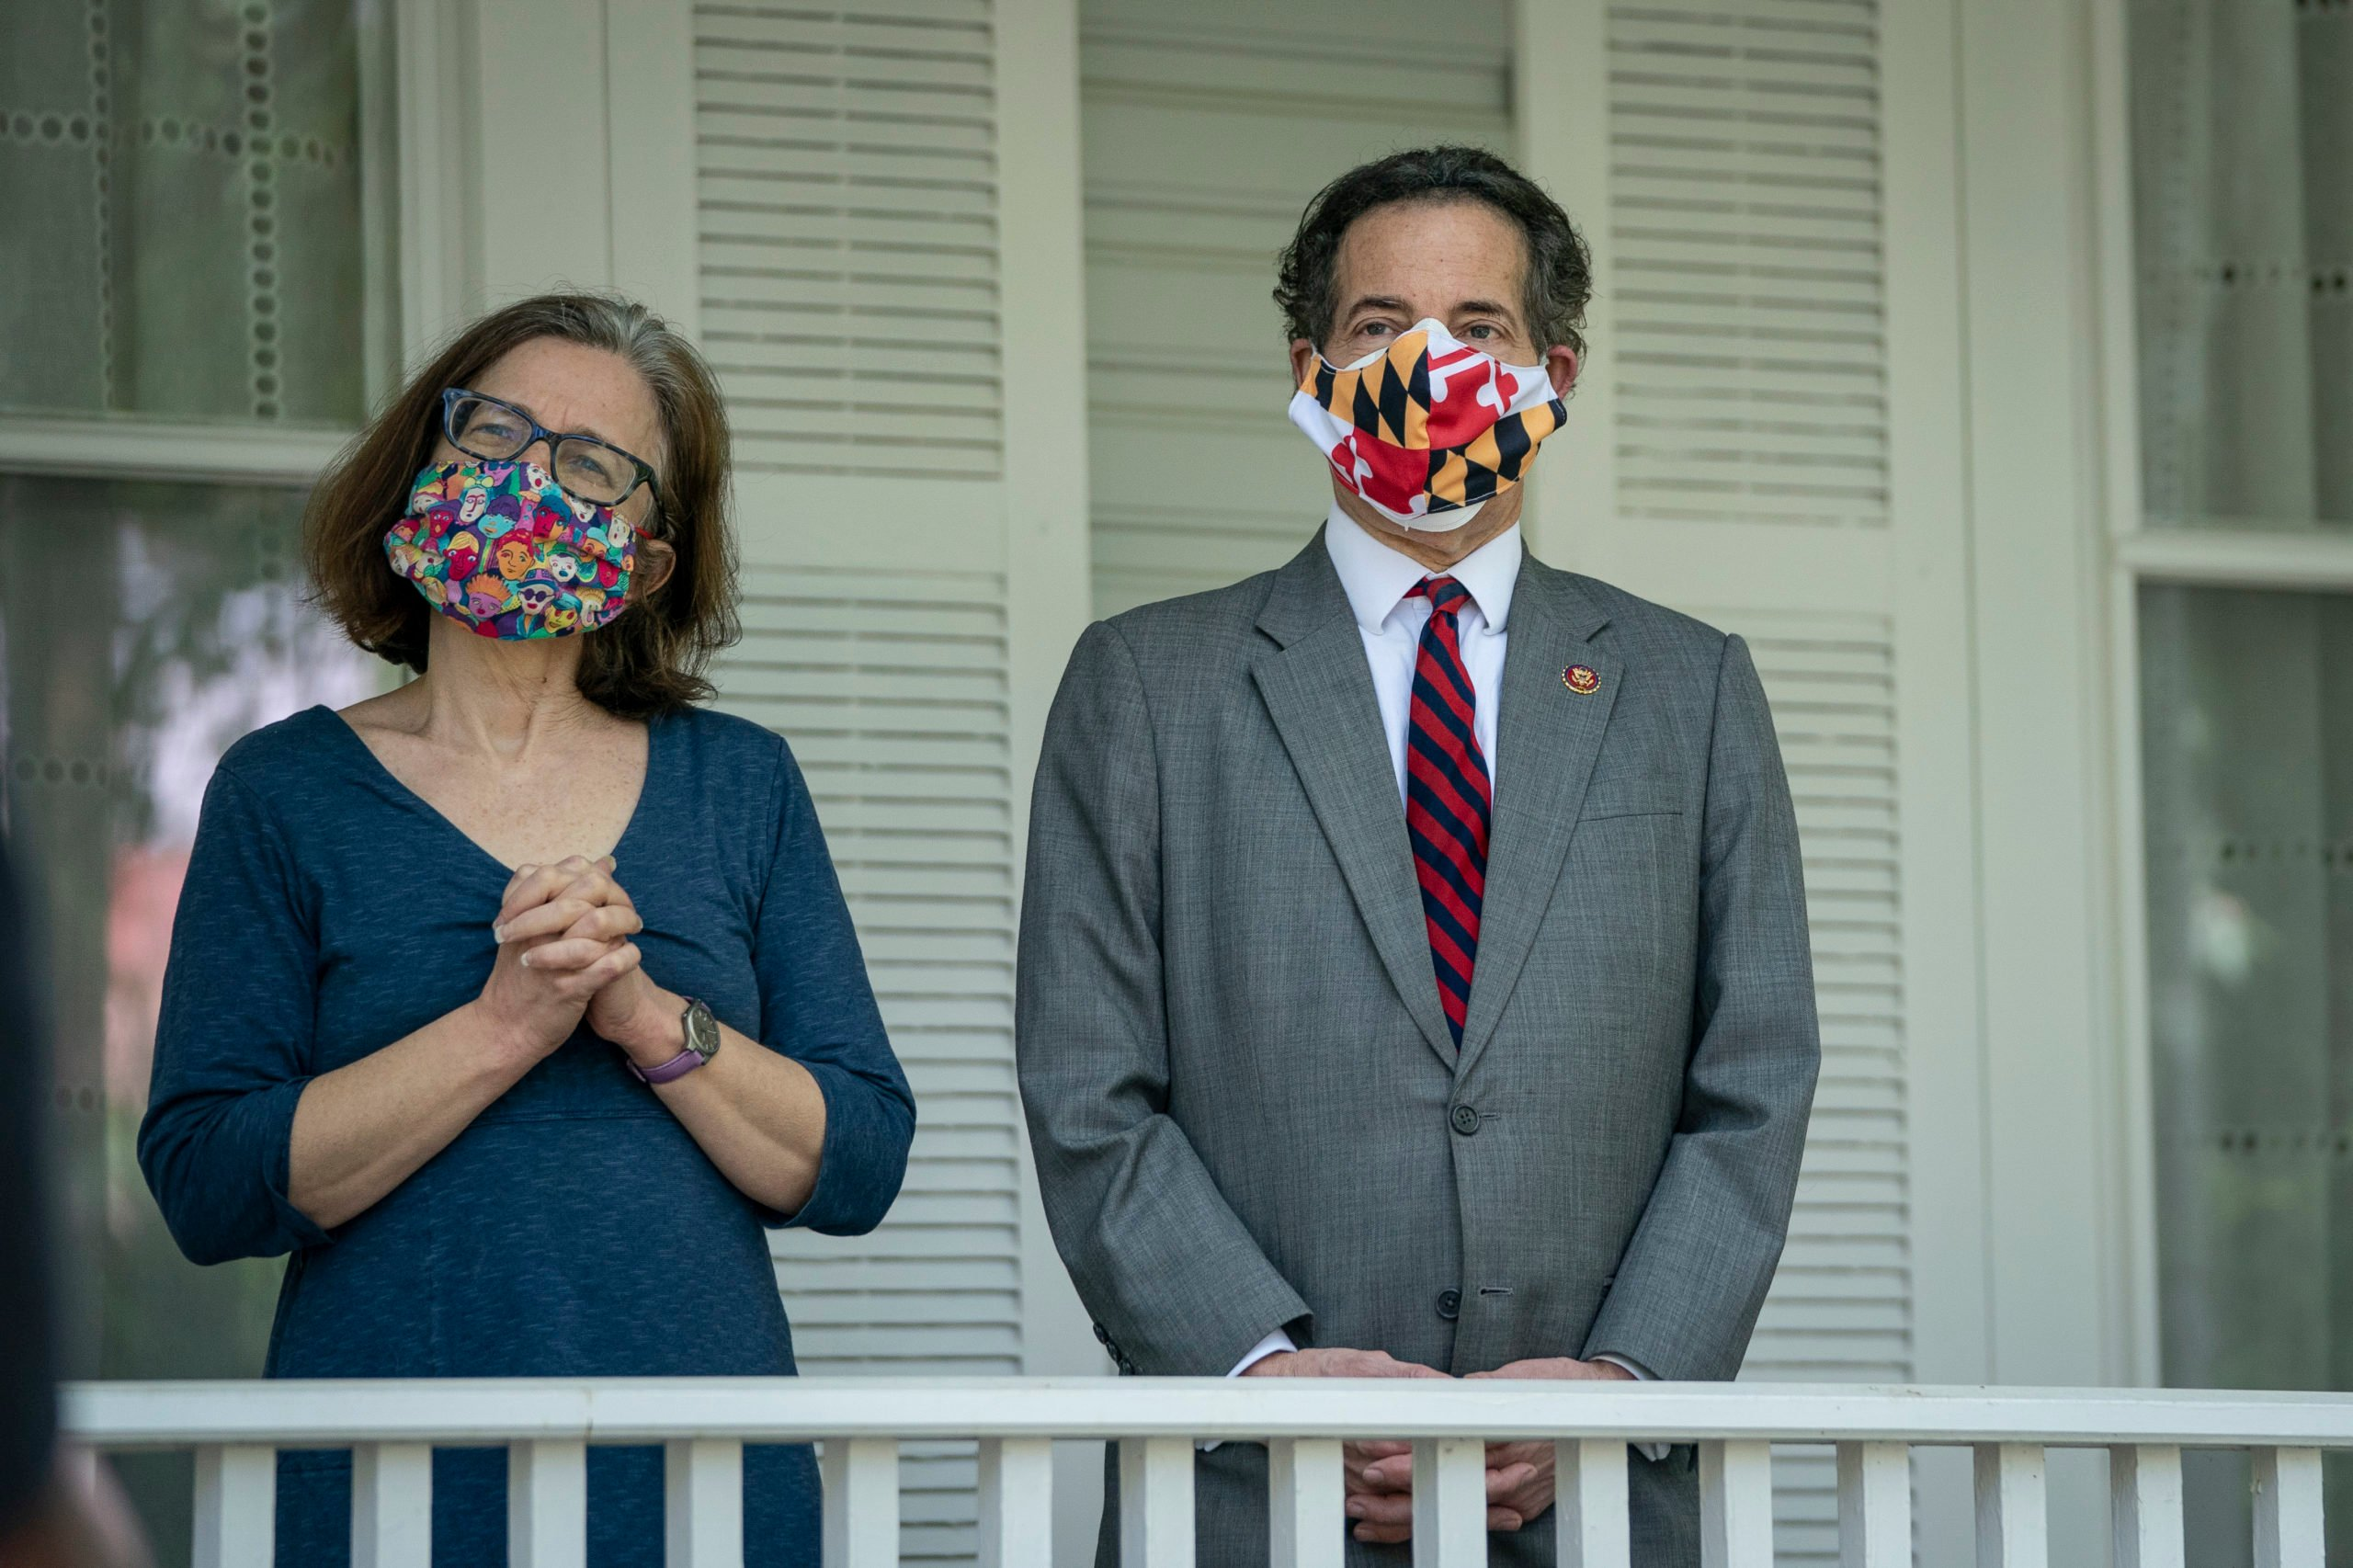 TAKOMA PARK, MD - MAY 04: (L-R) Sarah Bloom Raskin and U.S. Rep. Jamie Raskin (D-MD) listen as a group of Maryland residents, calling themselves the 'Pandemic Comforters,' sing in the front yard of his home on May 4, 2020 in Takoma Park, Maryland. The singers wanted to use the nice weather to show gratitude to Rep. Raskinfor his work in Congress and offer their prayers during the coronavirus pandemic. Last week, Rep. Raskin was appointed by Speaker of the House Nancy Pelosi to the newly created House Select Committee On Coronavirus. (Photo by Drew Angerer/Getty Images)